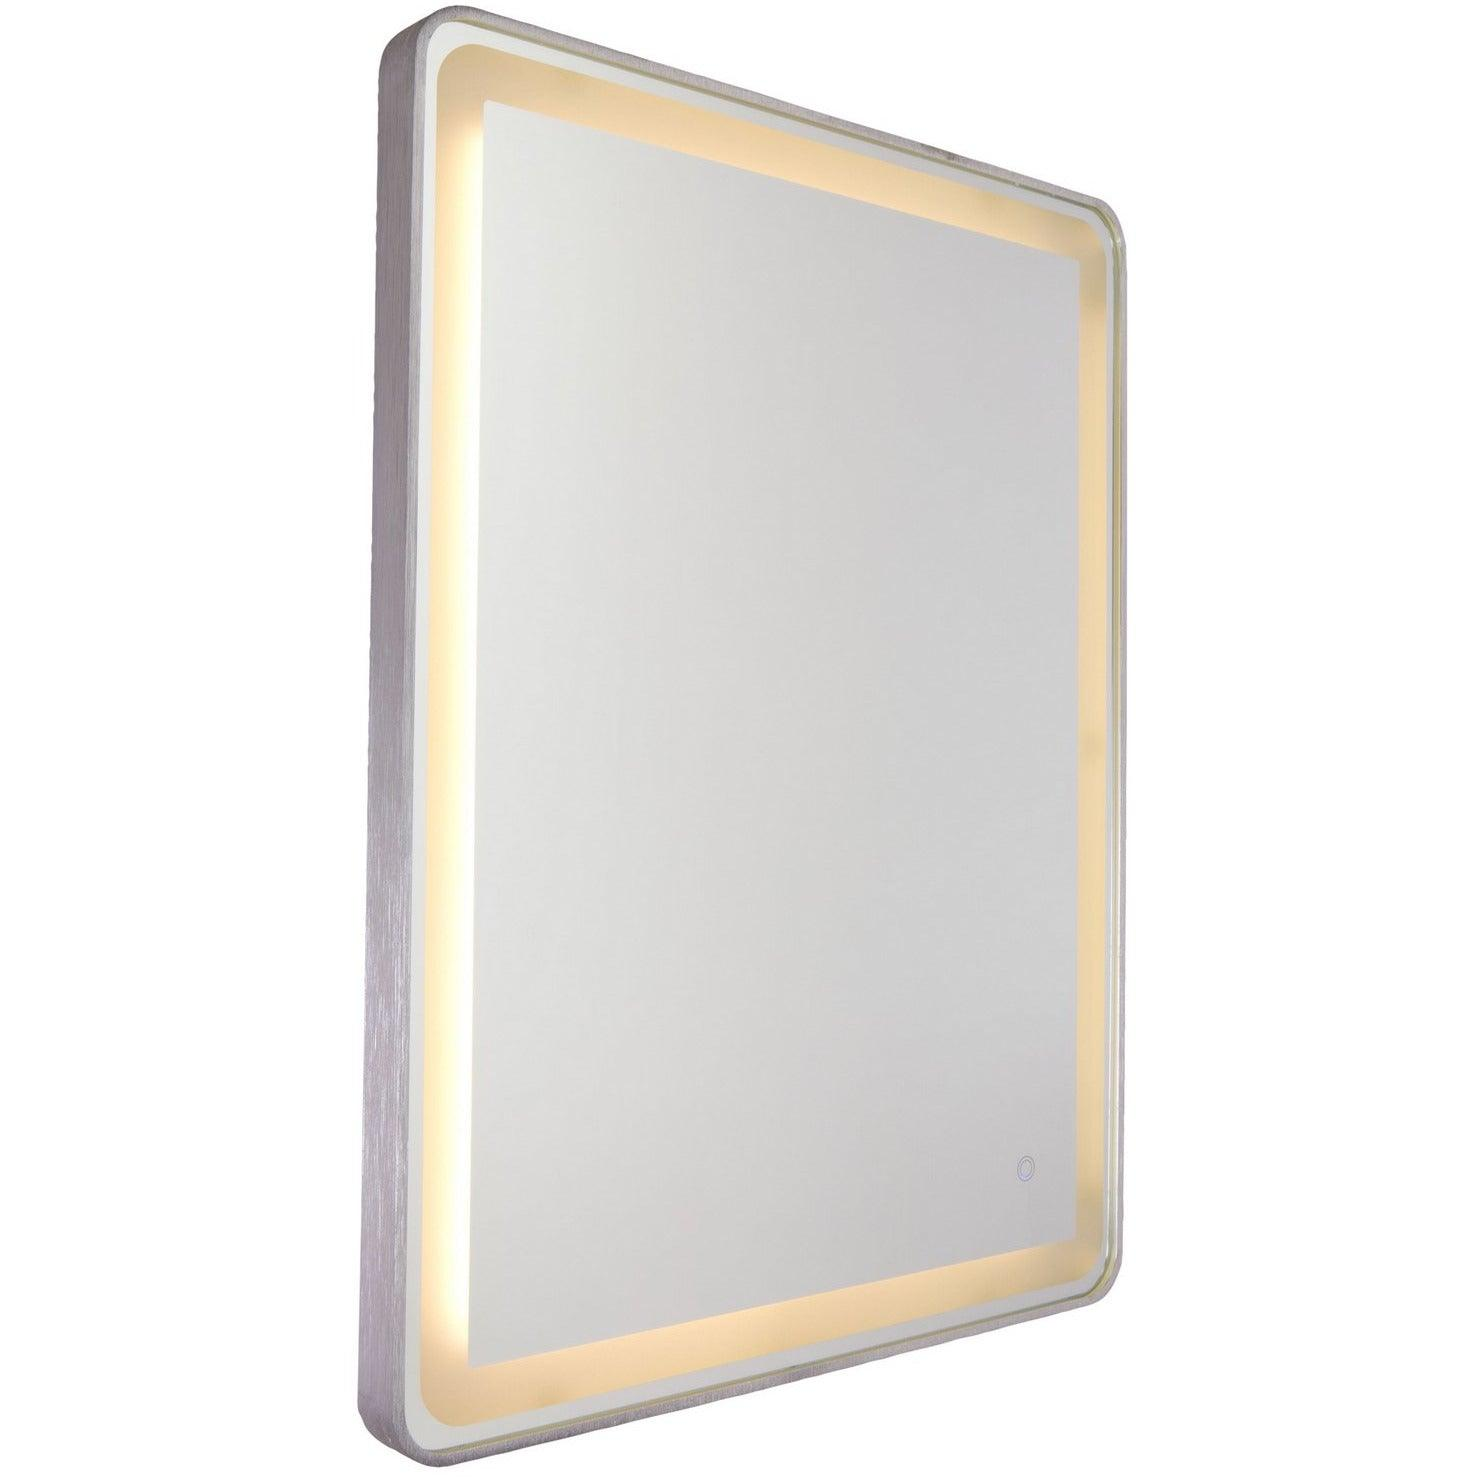 Artcraft Lighting - AM301 - LED Mirror - Reflections - Brushed Aluminum